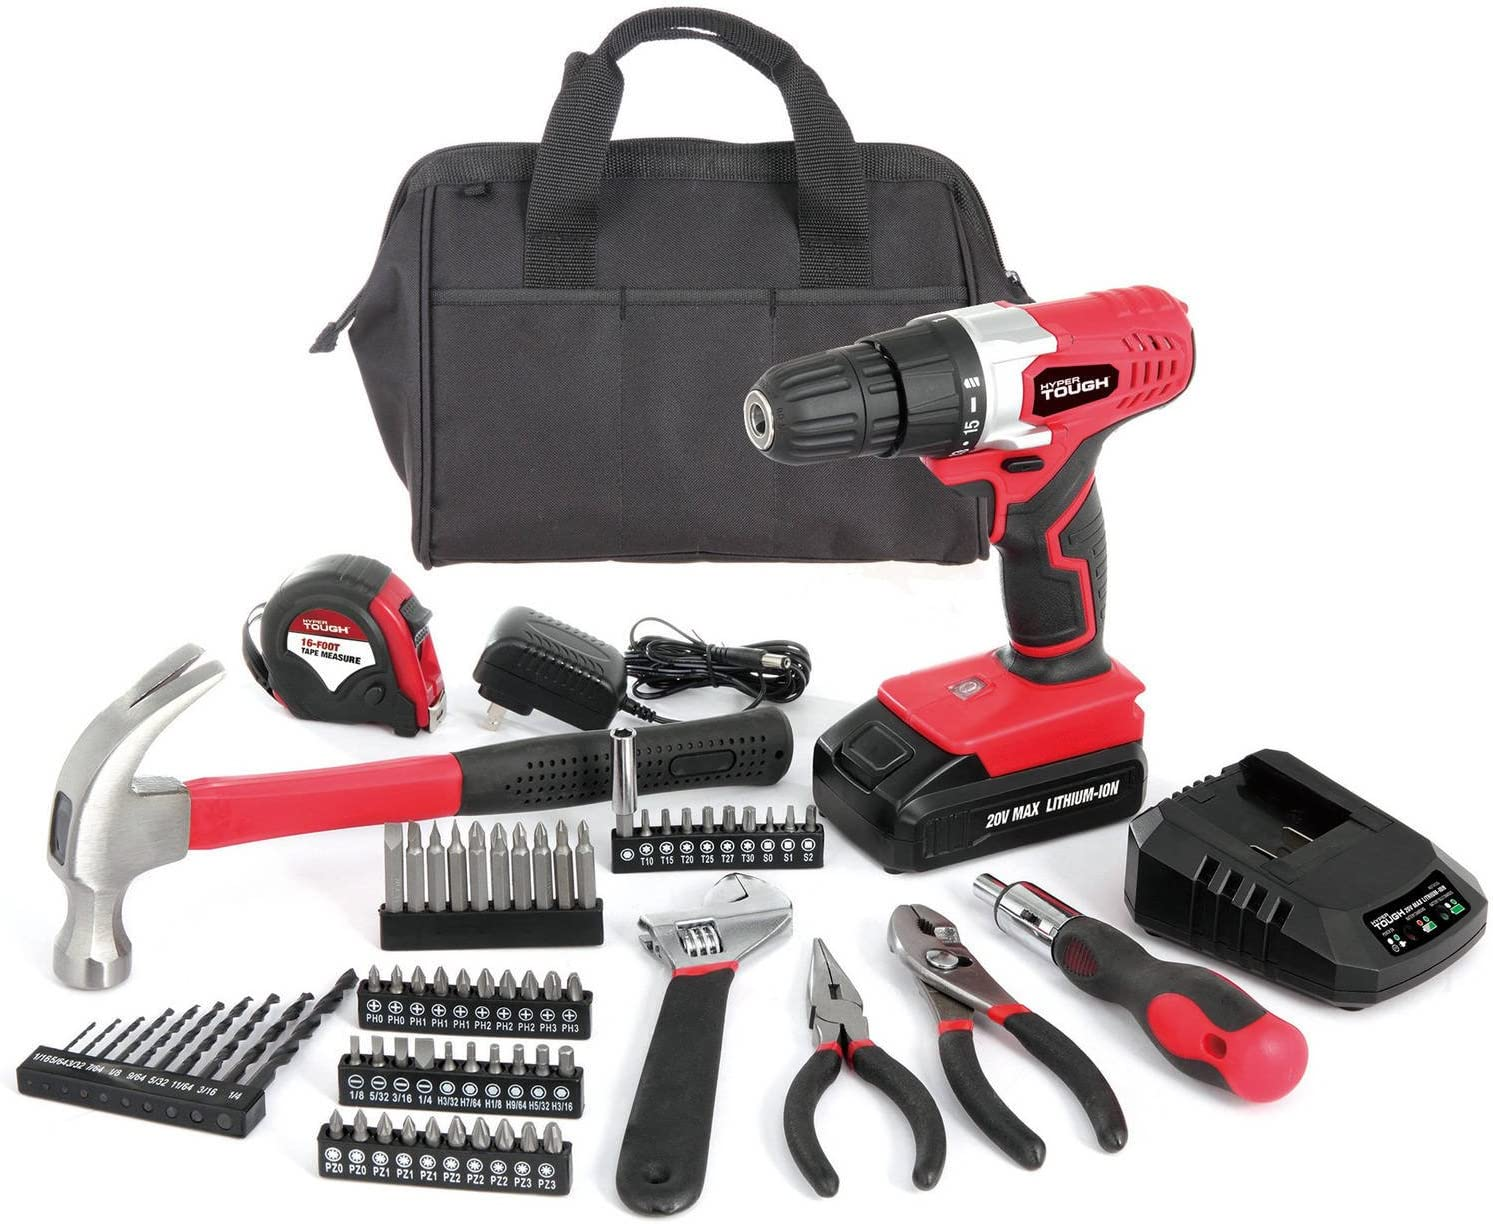 Goplus 18V Cordless Drill Driver Set with 78-Piece, 16 Position Keyless Torque Clutch, Variable Speed Construction Work Screwdriver with Professional Case, Max 3 8-Inch